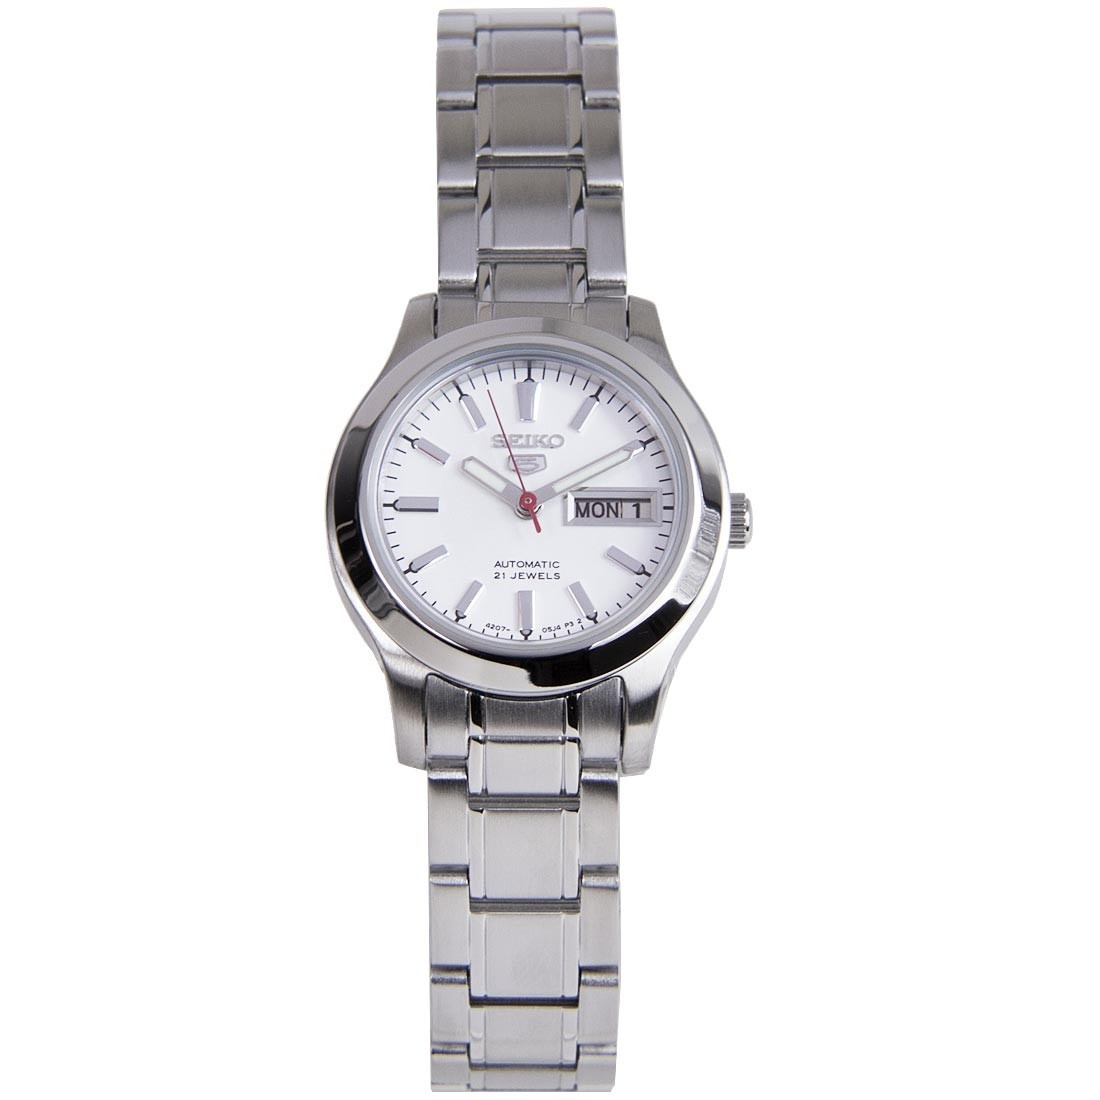 Seikosymd87k1 Symd87k Symd87 Seiko 5 Automatic White Dial Stainless Steel Strap Ladies Dress Watch